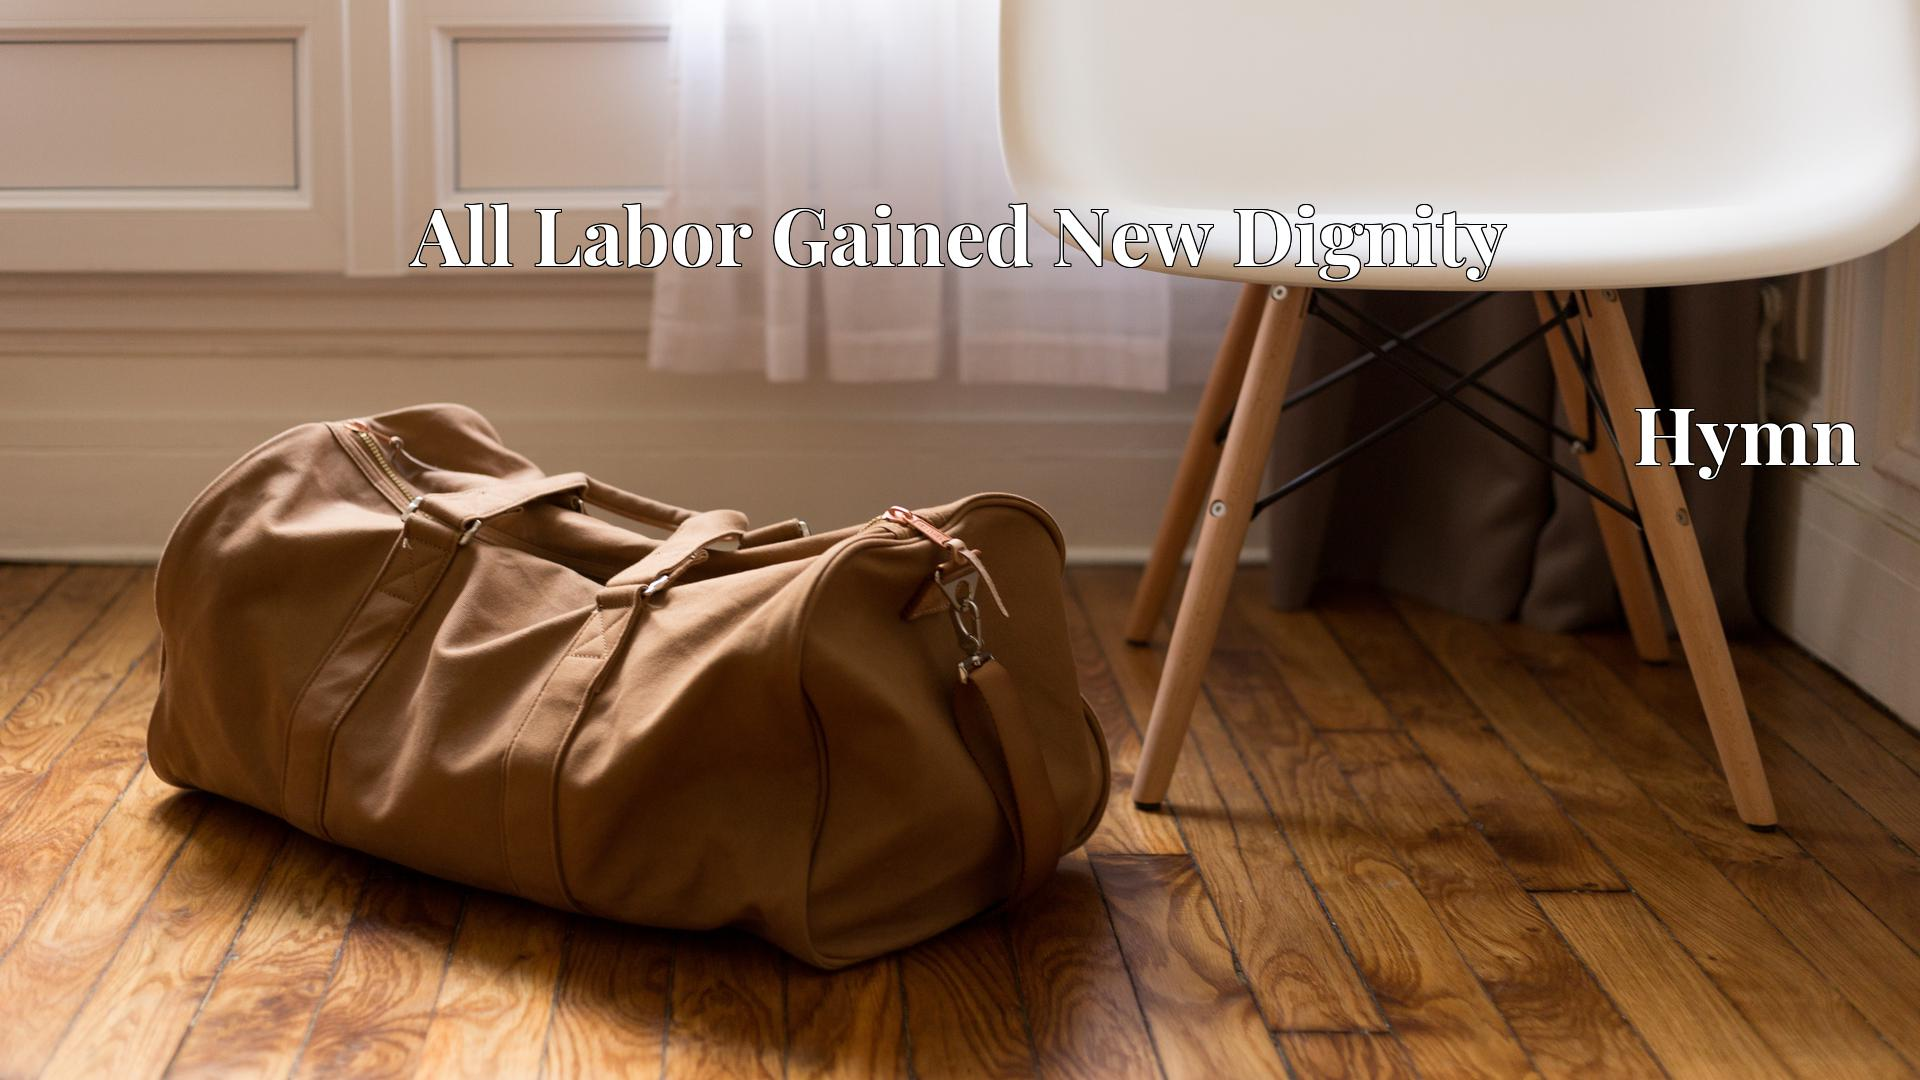 All Labor Gained New Dignity - Hymn